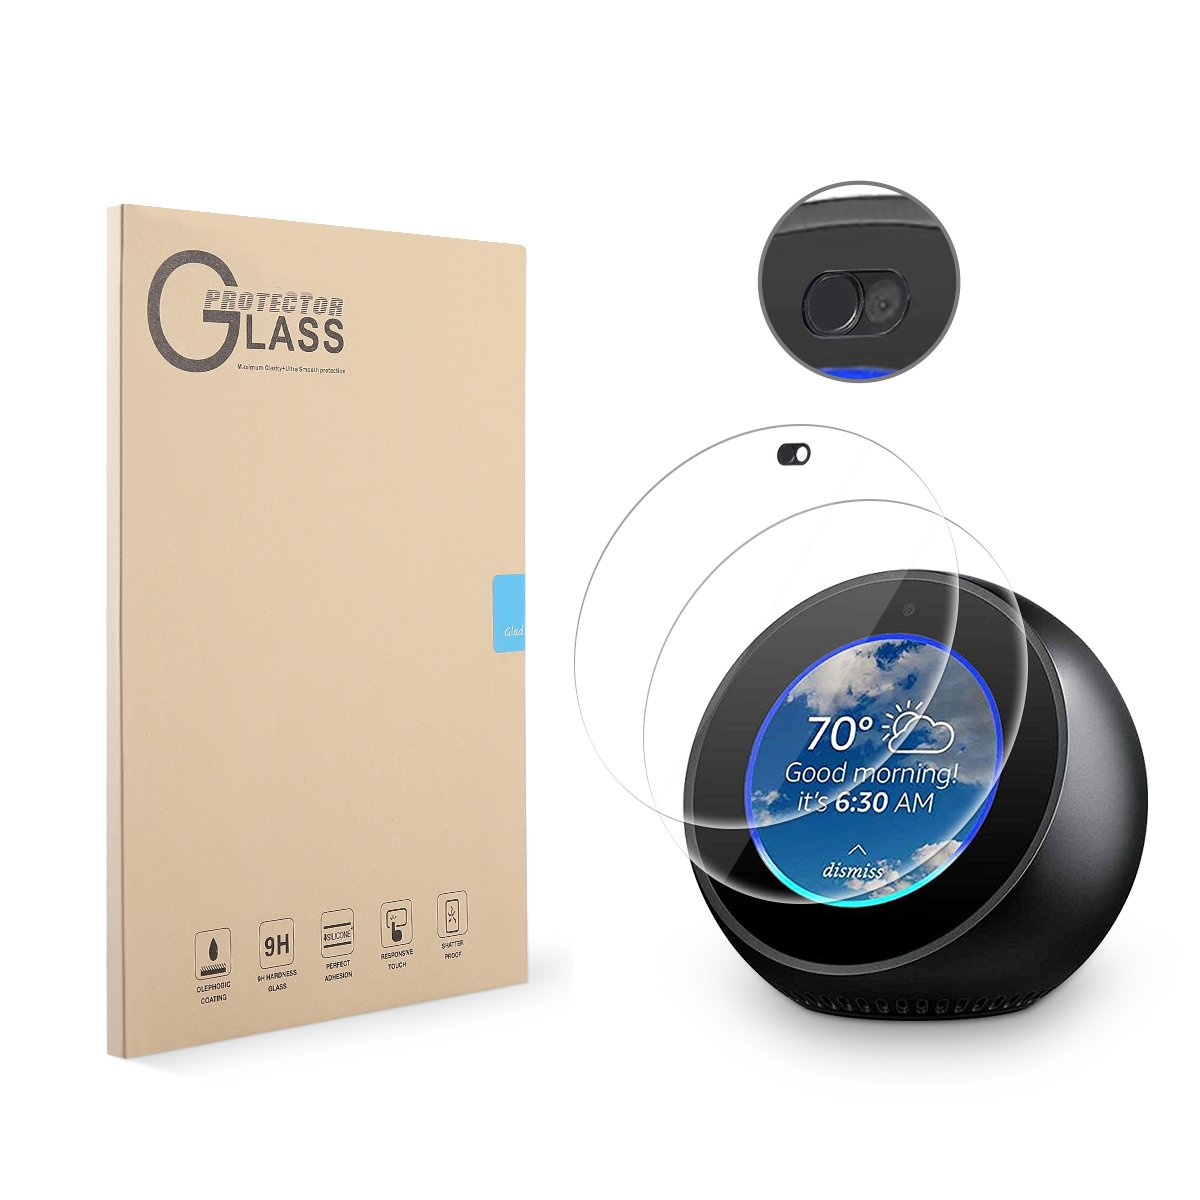 LANMU Echo Spot Screen Protector Webcam Cover,High Definition Screen Protector Echo Spot Webcam Cover Protecting Everyone's Privacy,Echo Spot Accessories-2 Screen Protector 1 Webcam Cover